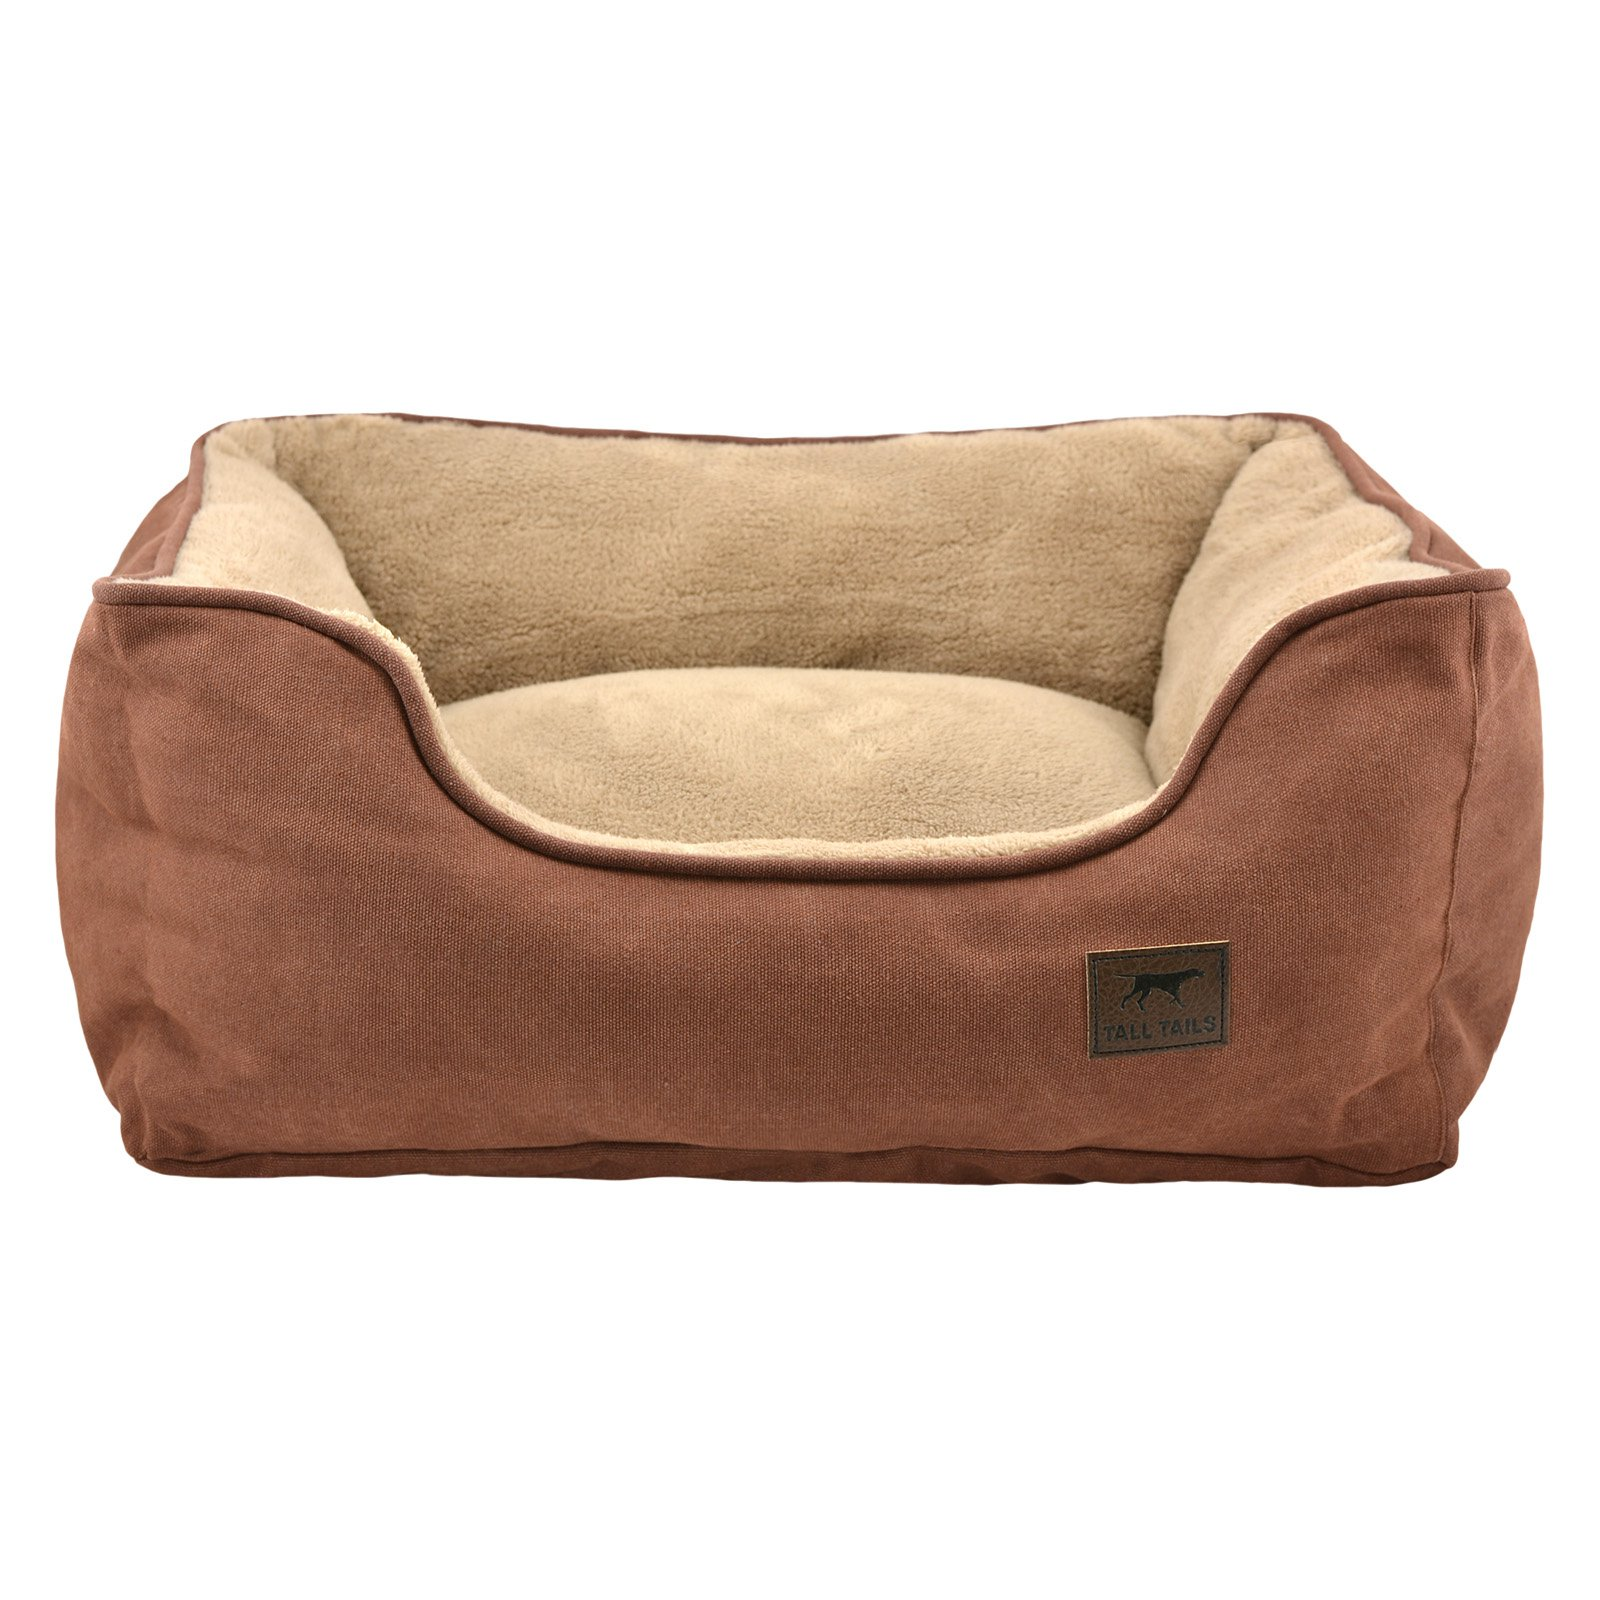 Tall Tails Dream Chaser Brown Bolster Dog Bed, Medium